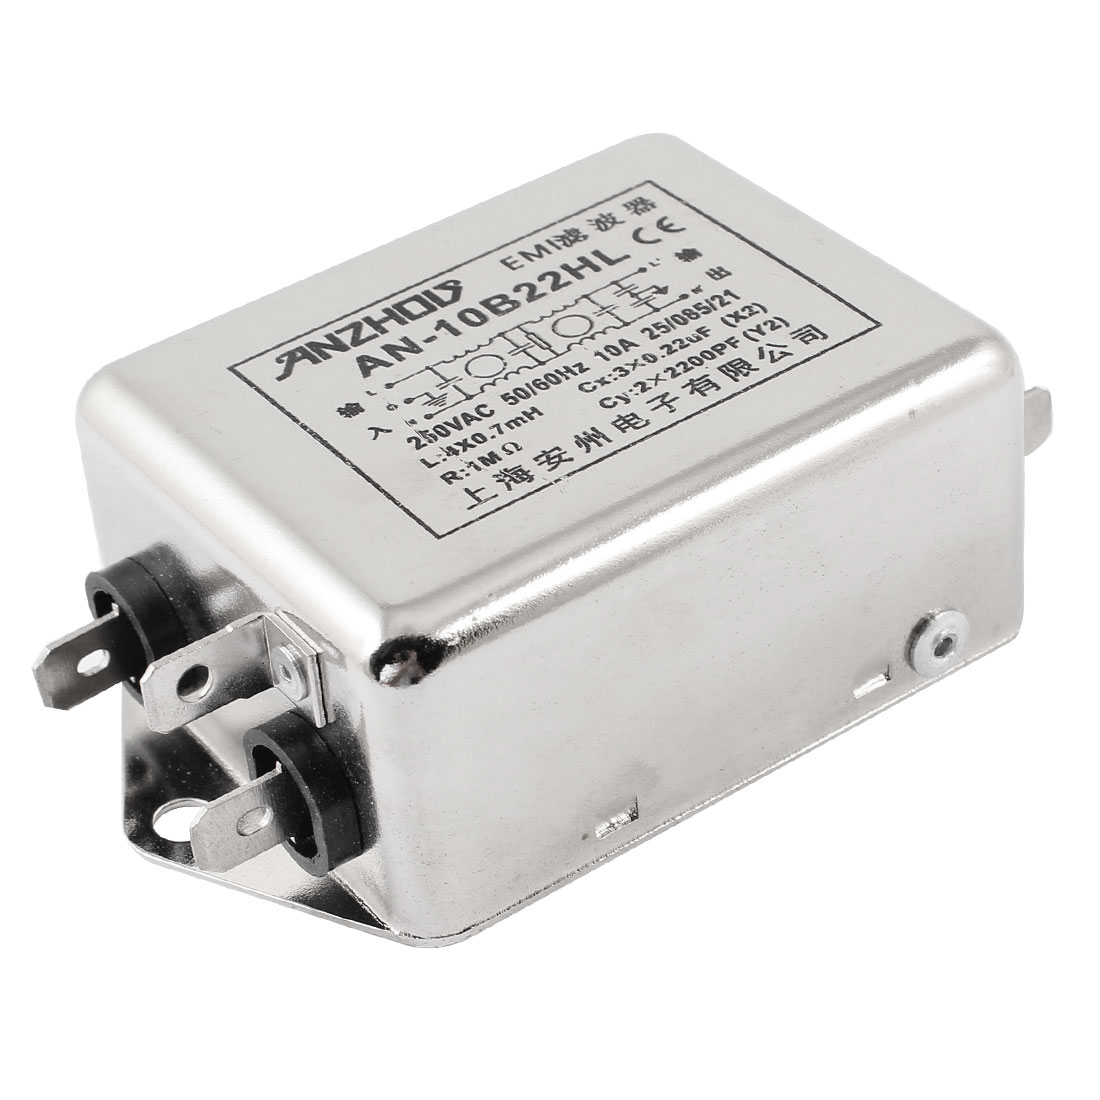 AN-10B22HL AC 250V 10A Single Phase Noise Suppressor Power Line EMI Filter